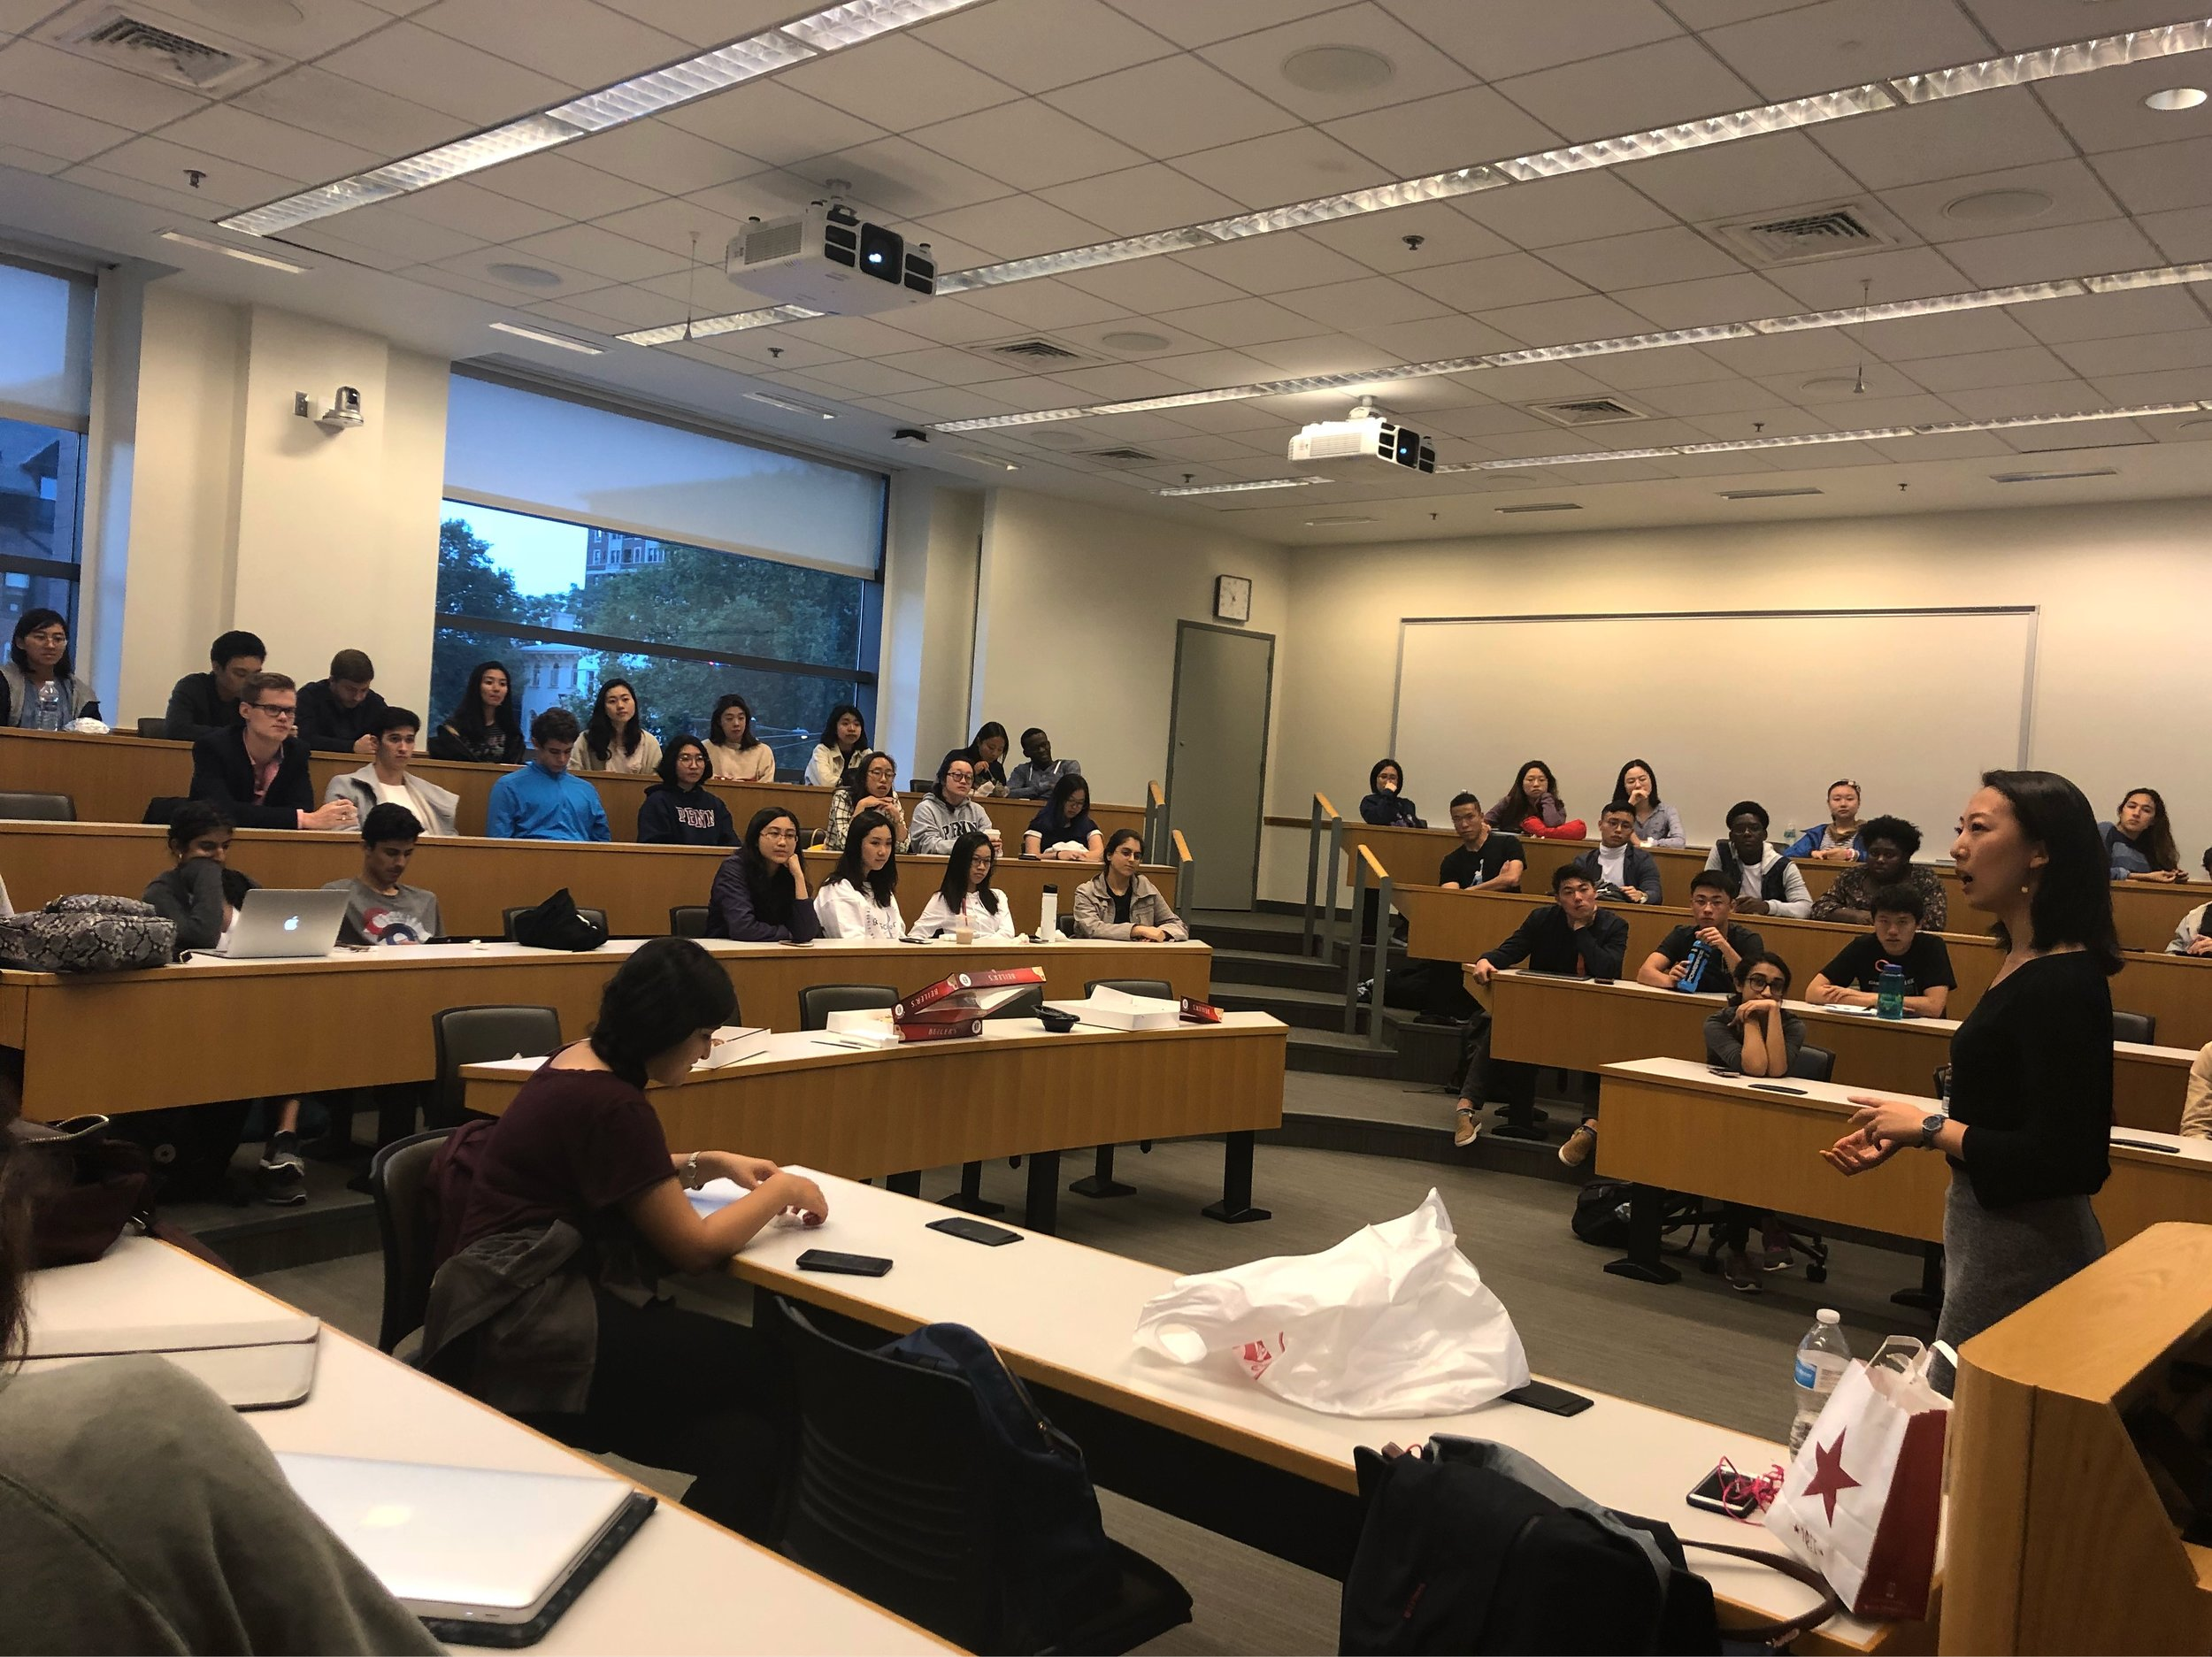 2018 Fall GBM - AIS hosted its Fall GBM and provided Donuts from Beiler's. The room was packed with students who were interested to join AIS.